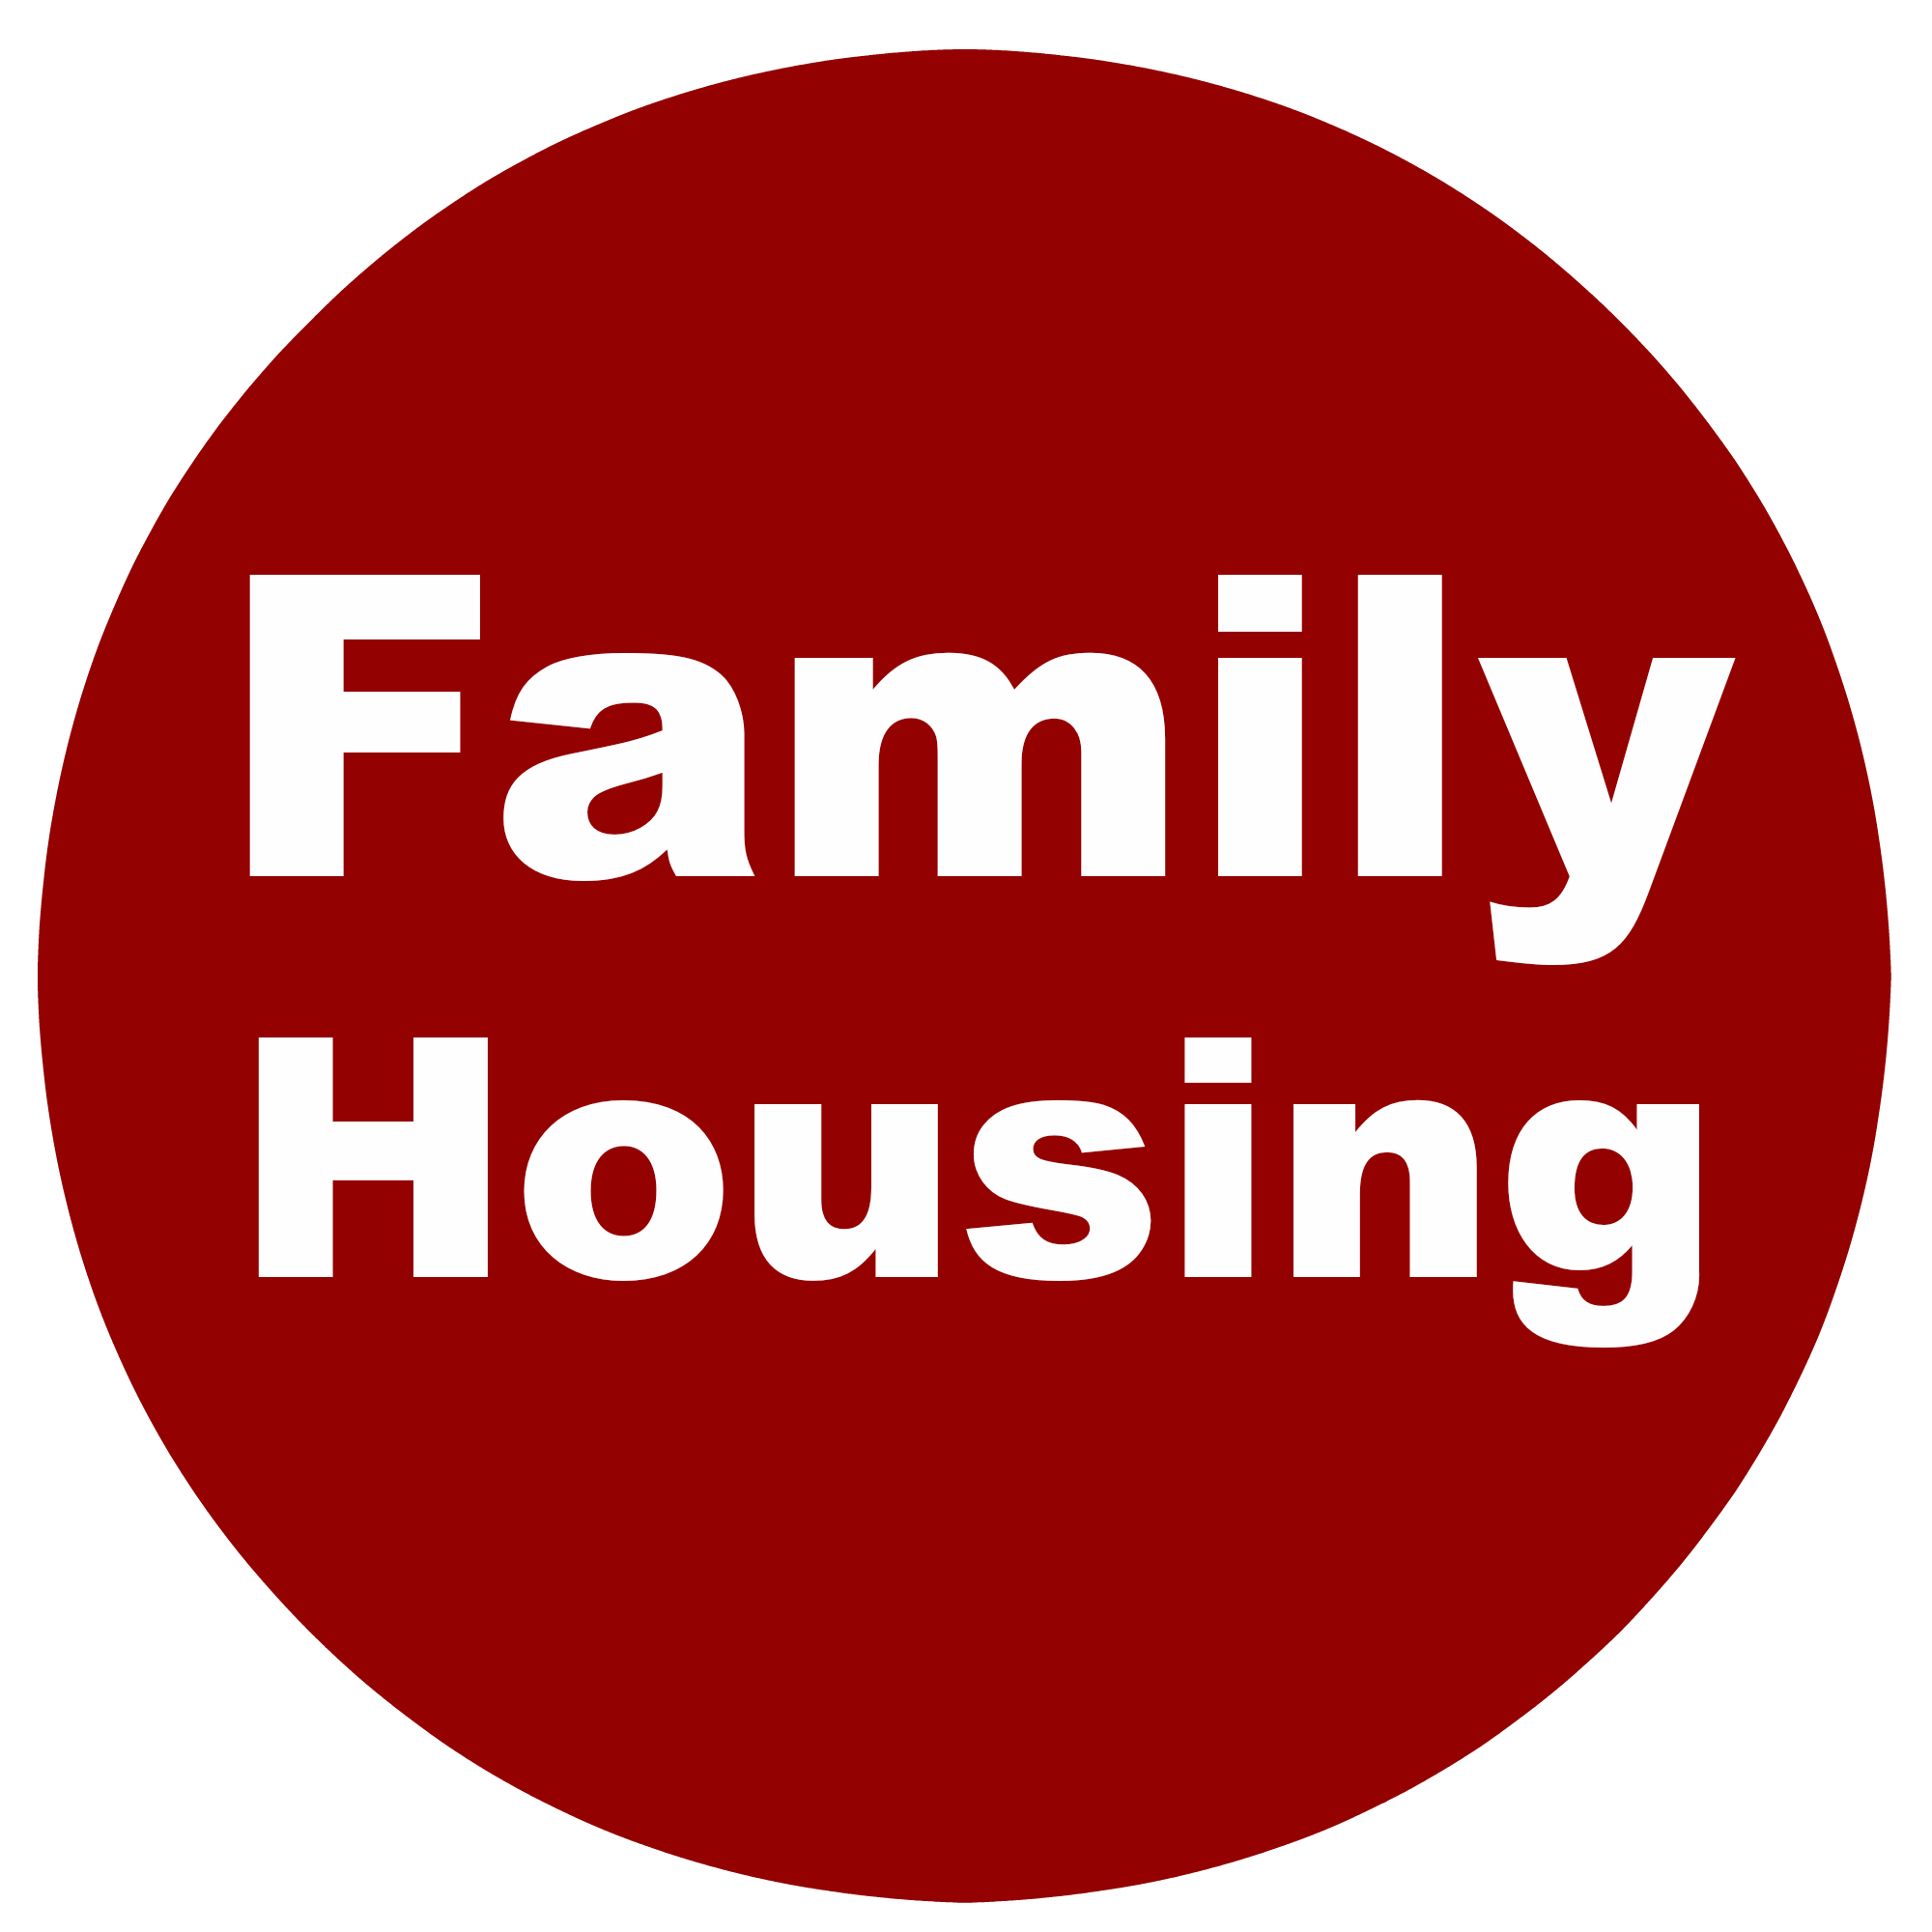 family housing icon.png